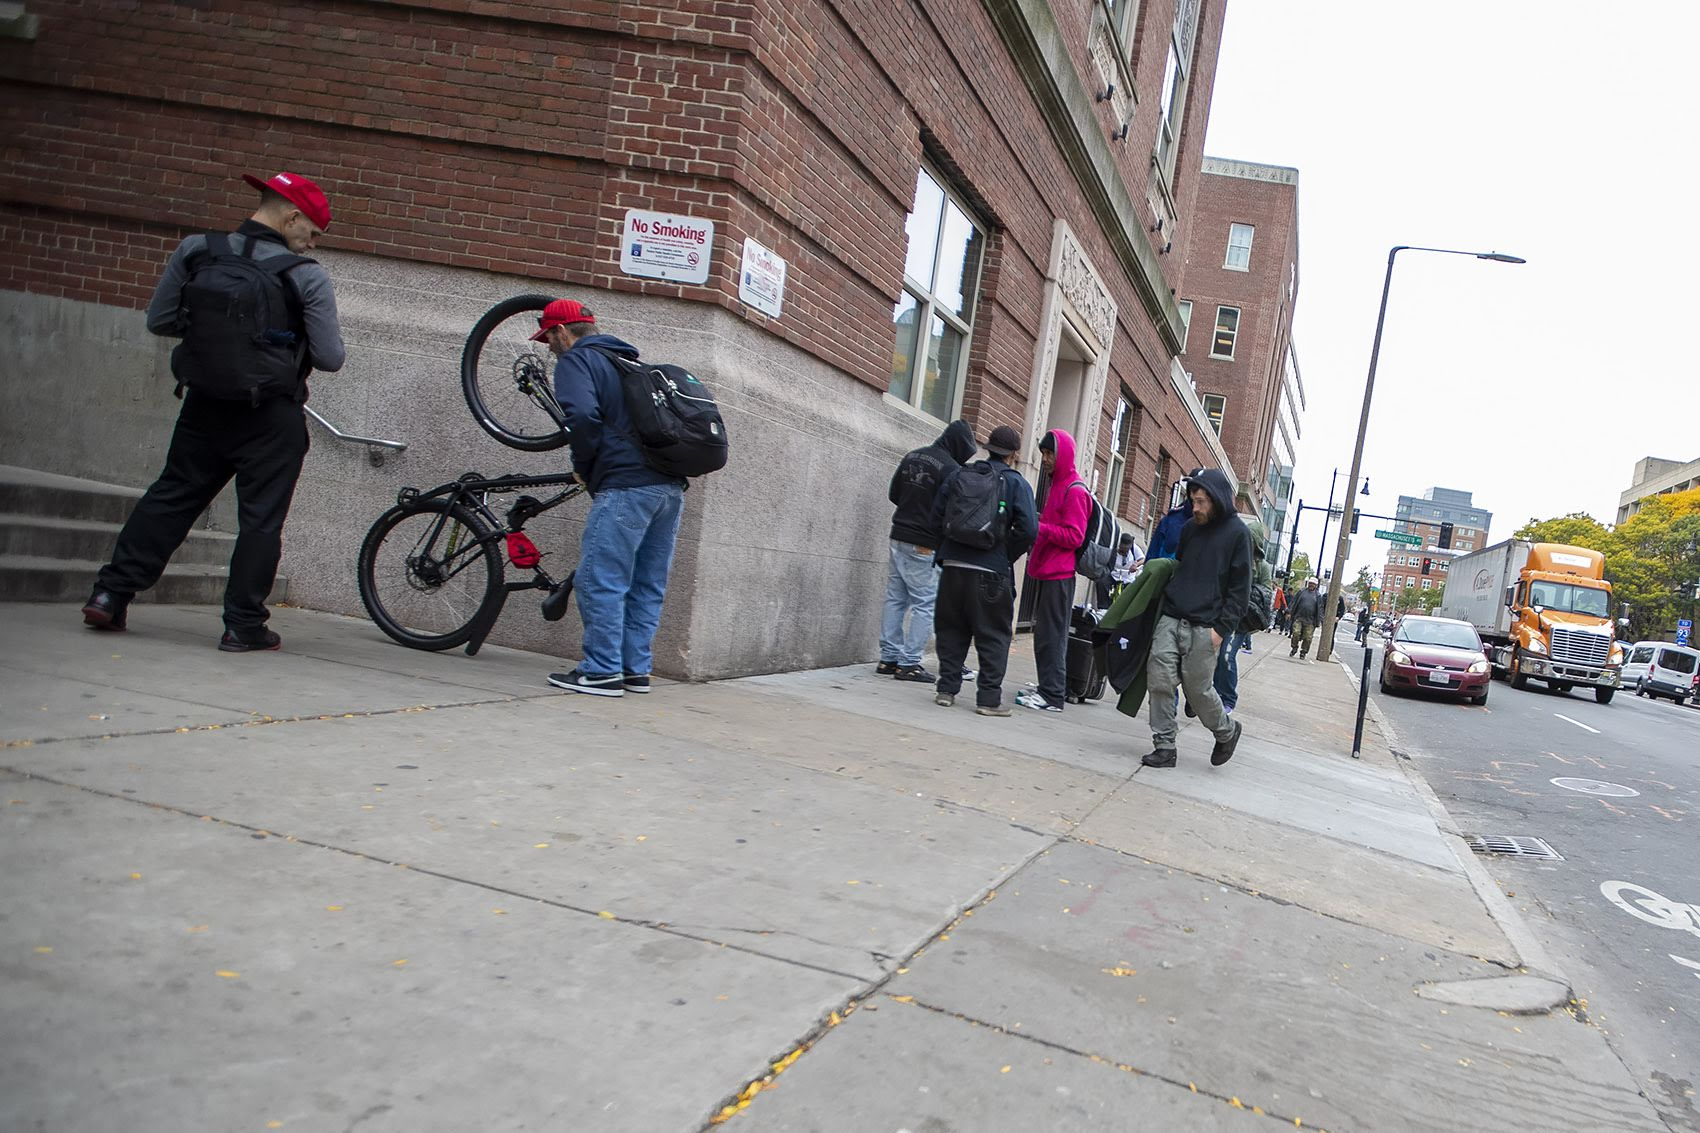 The scene in front of Boston Health Care for the Homeless Program on Albany Street in Boston. (Jesse Costa/WBUR)